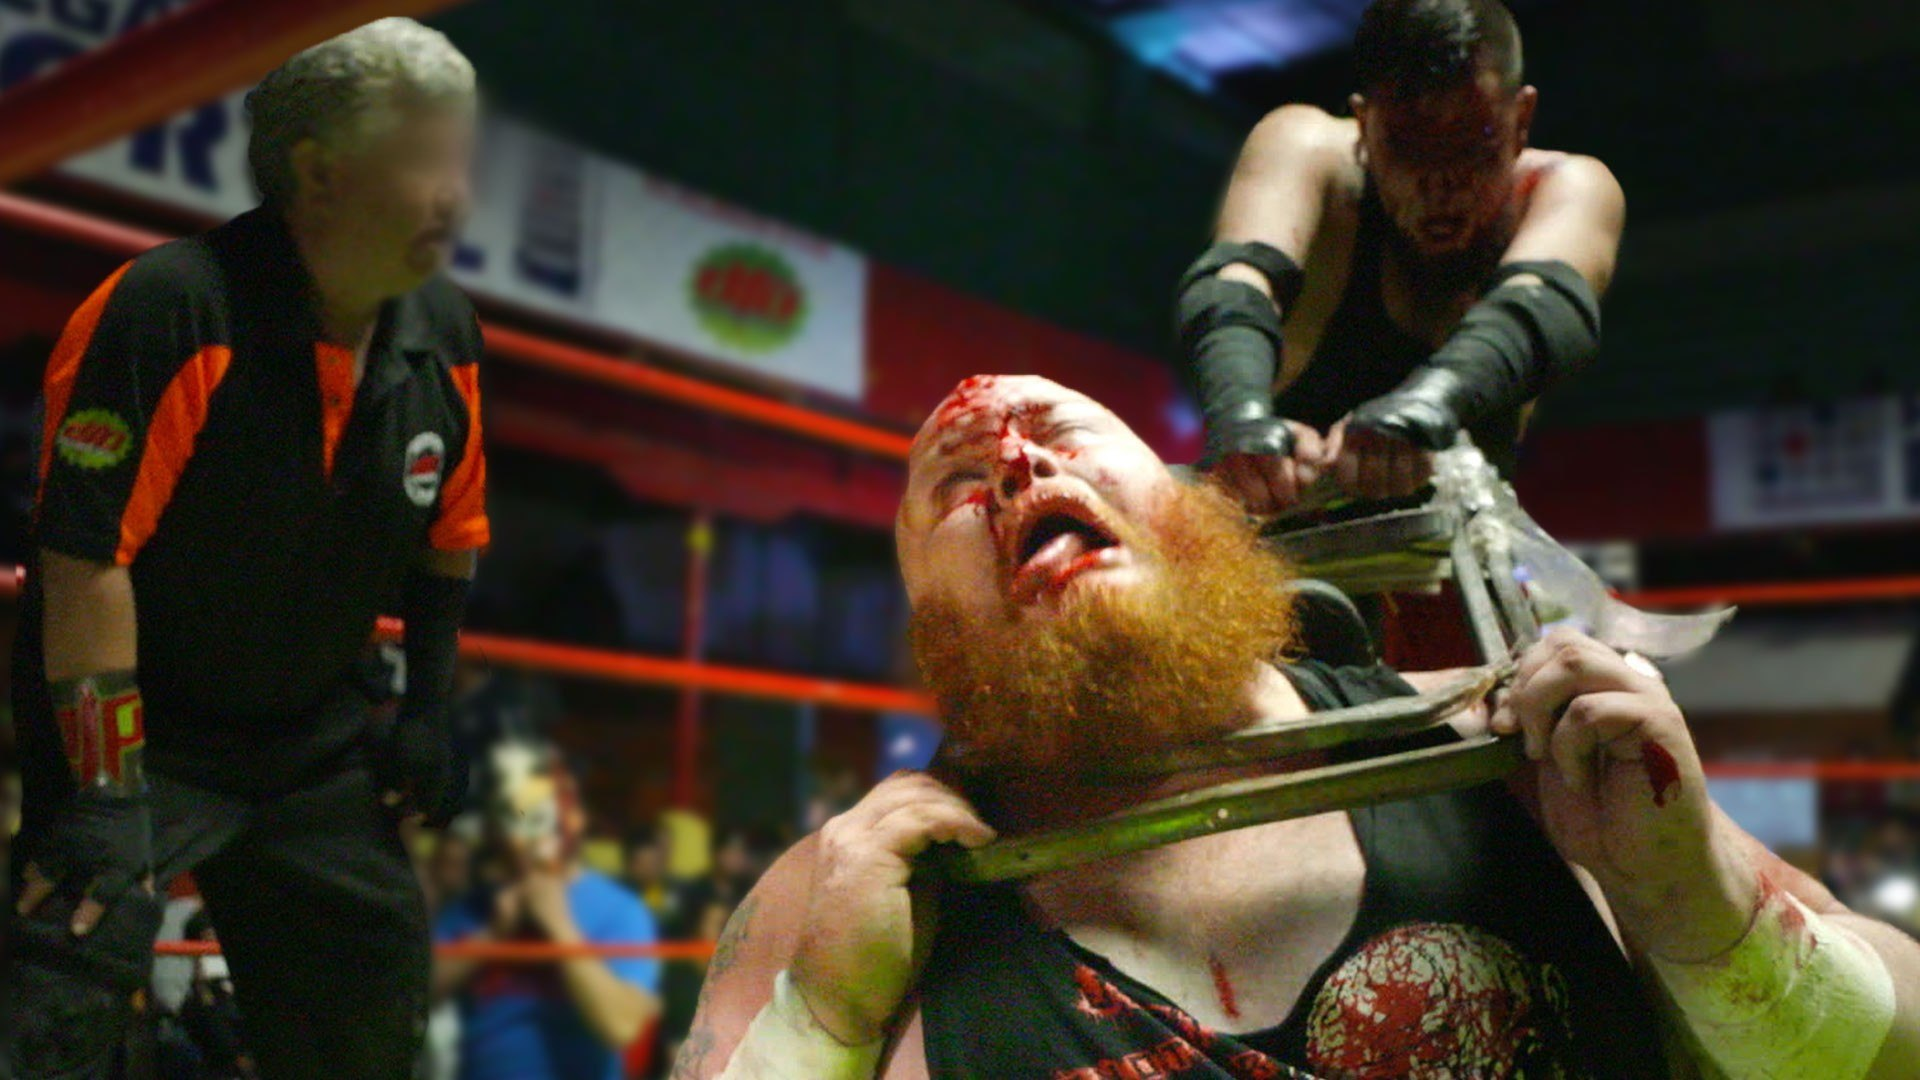 Inside 'Total Ultra-Violent Disaster,' Mexico's Most Extreme Wrestling League